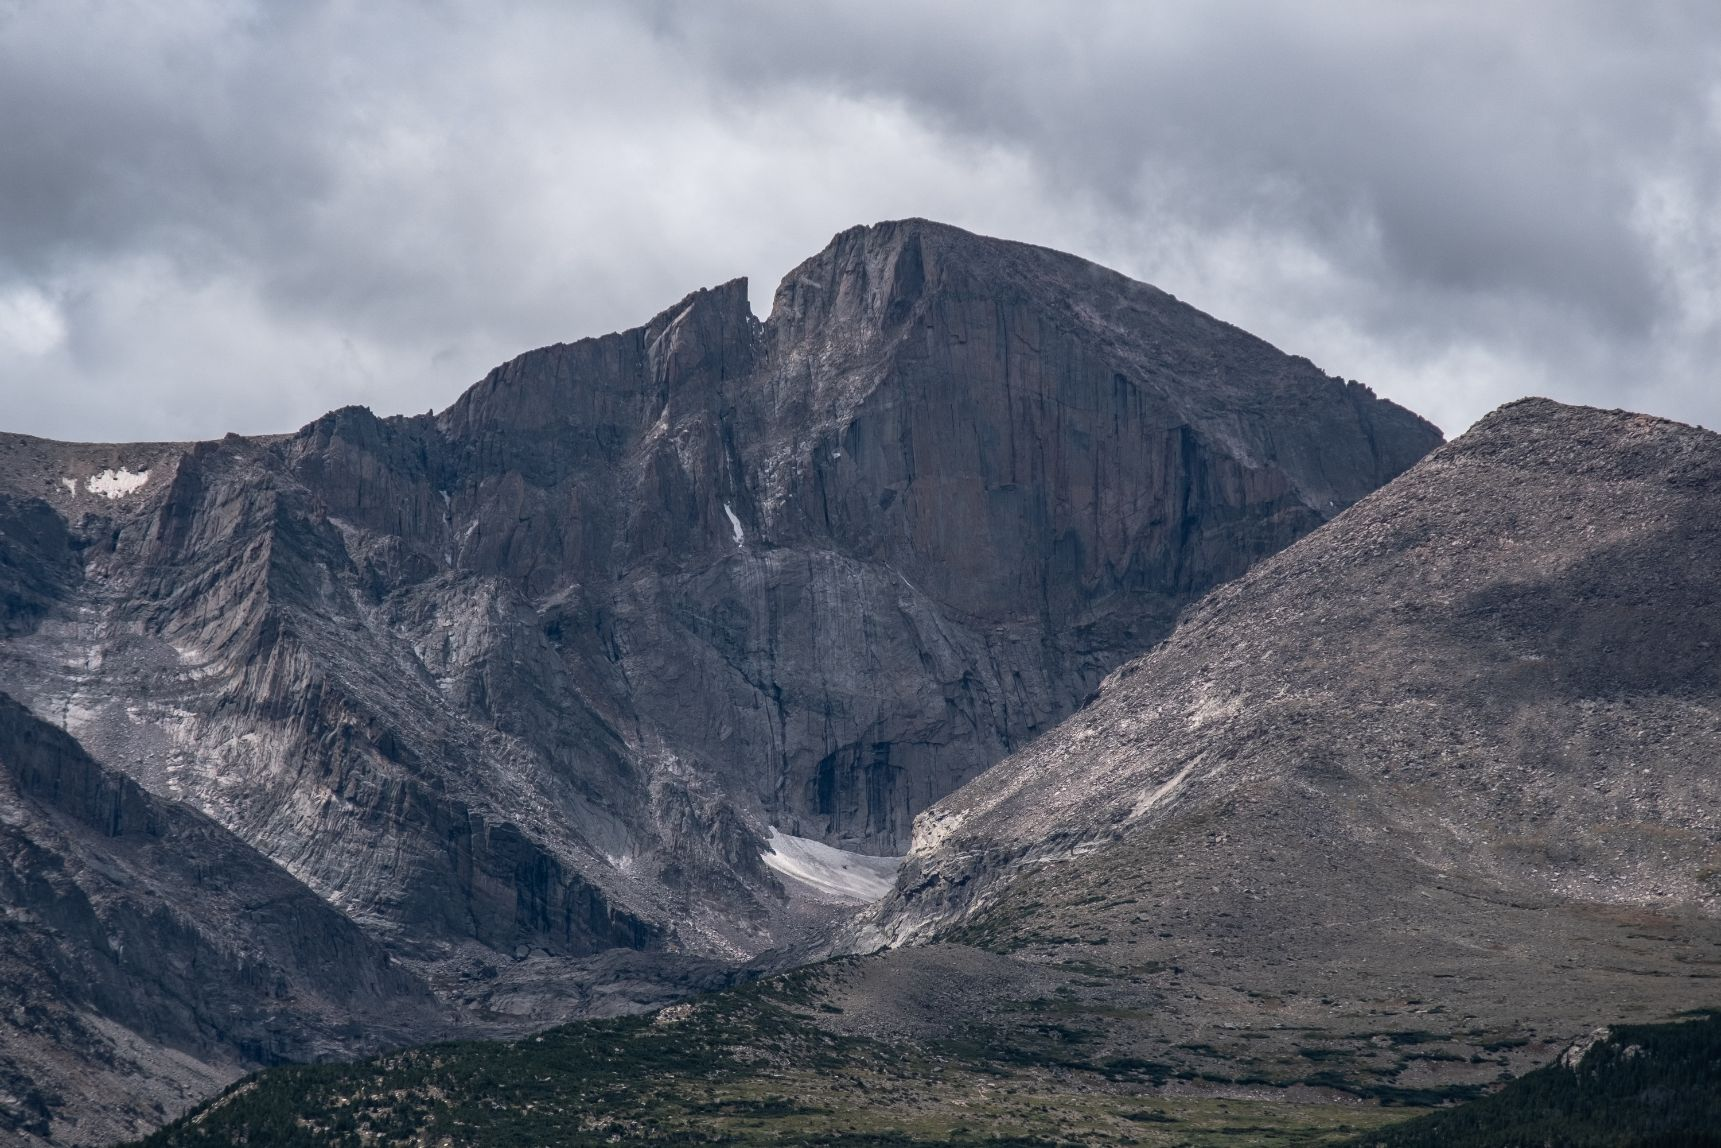 Long's Peak Mountain in the Rocky Mountains of Colorado